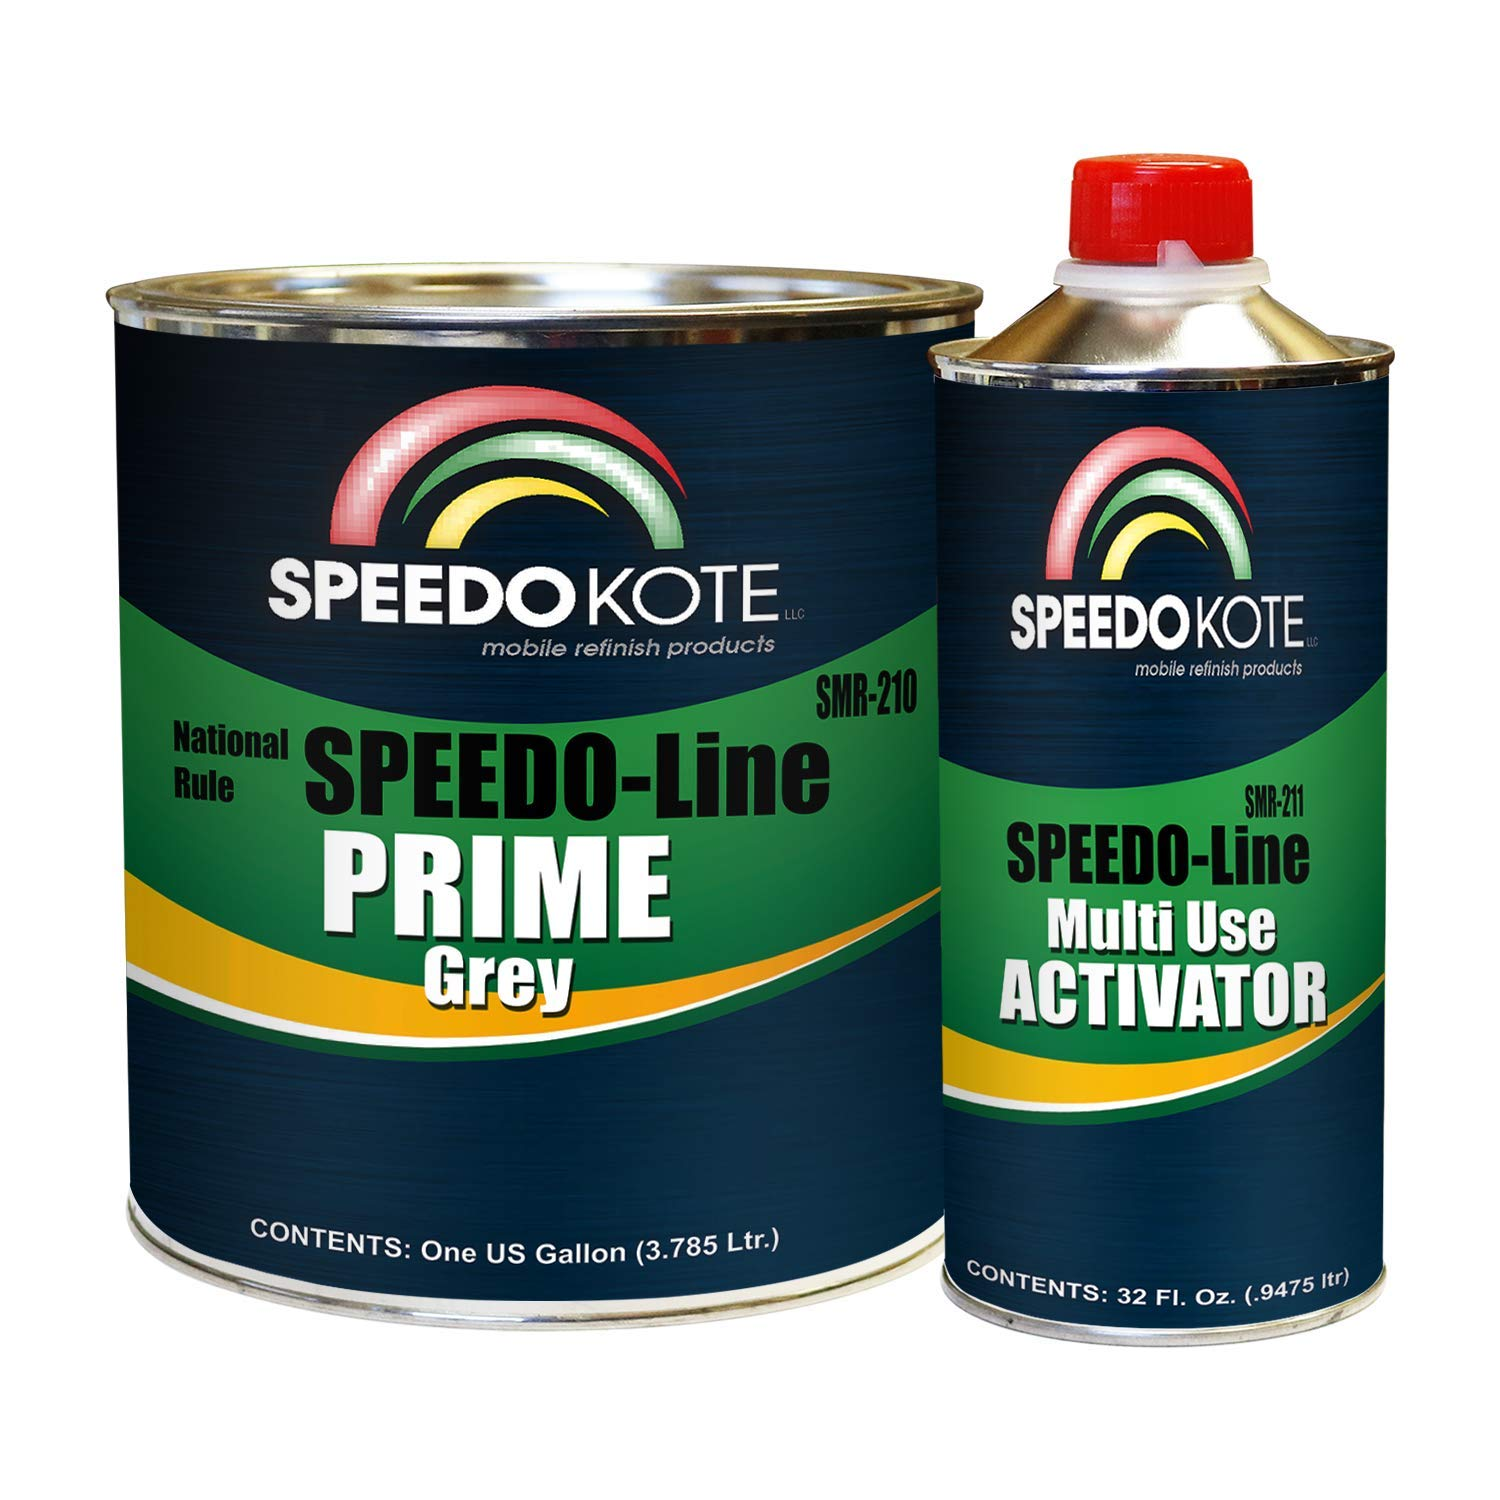 Speedokote SMR-210/211 - Automotive High Build 2K Urethane Primer Gray Gallon Kit, Fast Dry, Easy Sanding, Activator is included by Speedokote (Image #1)